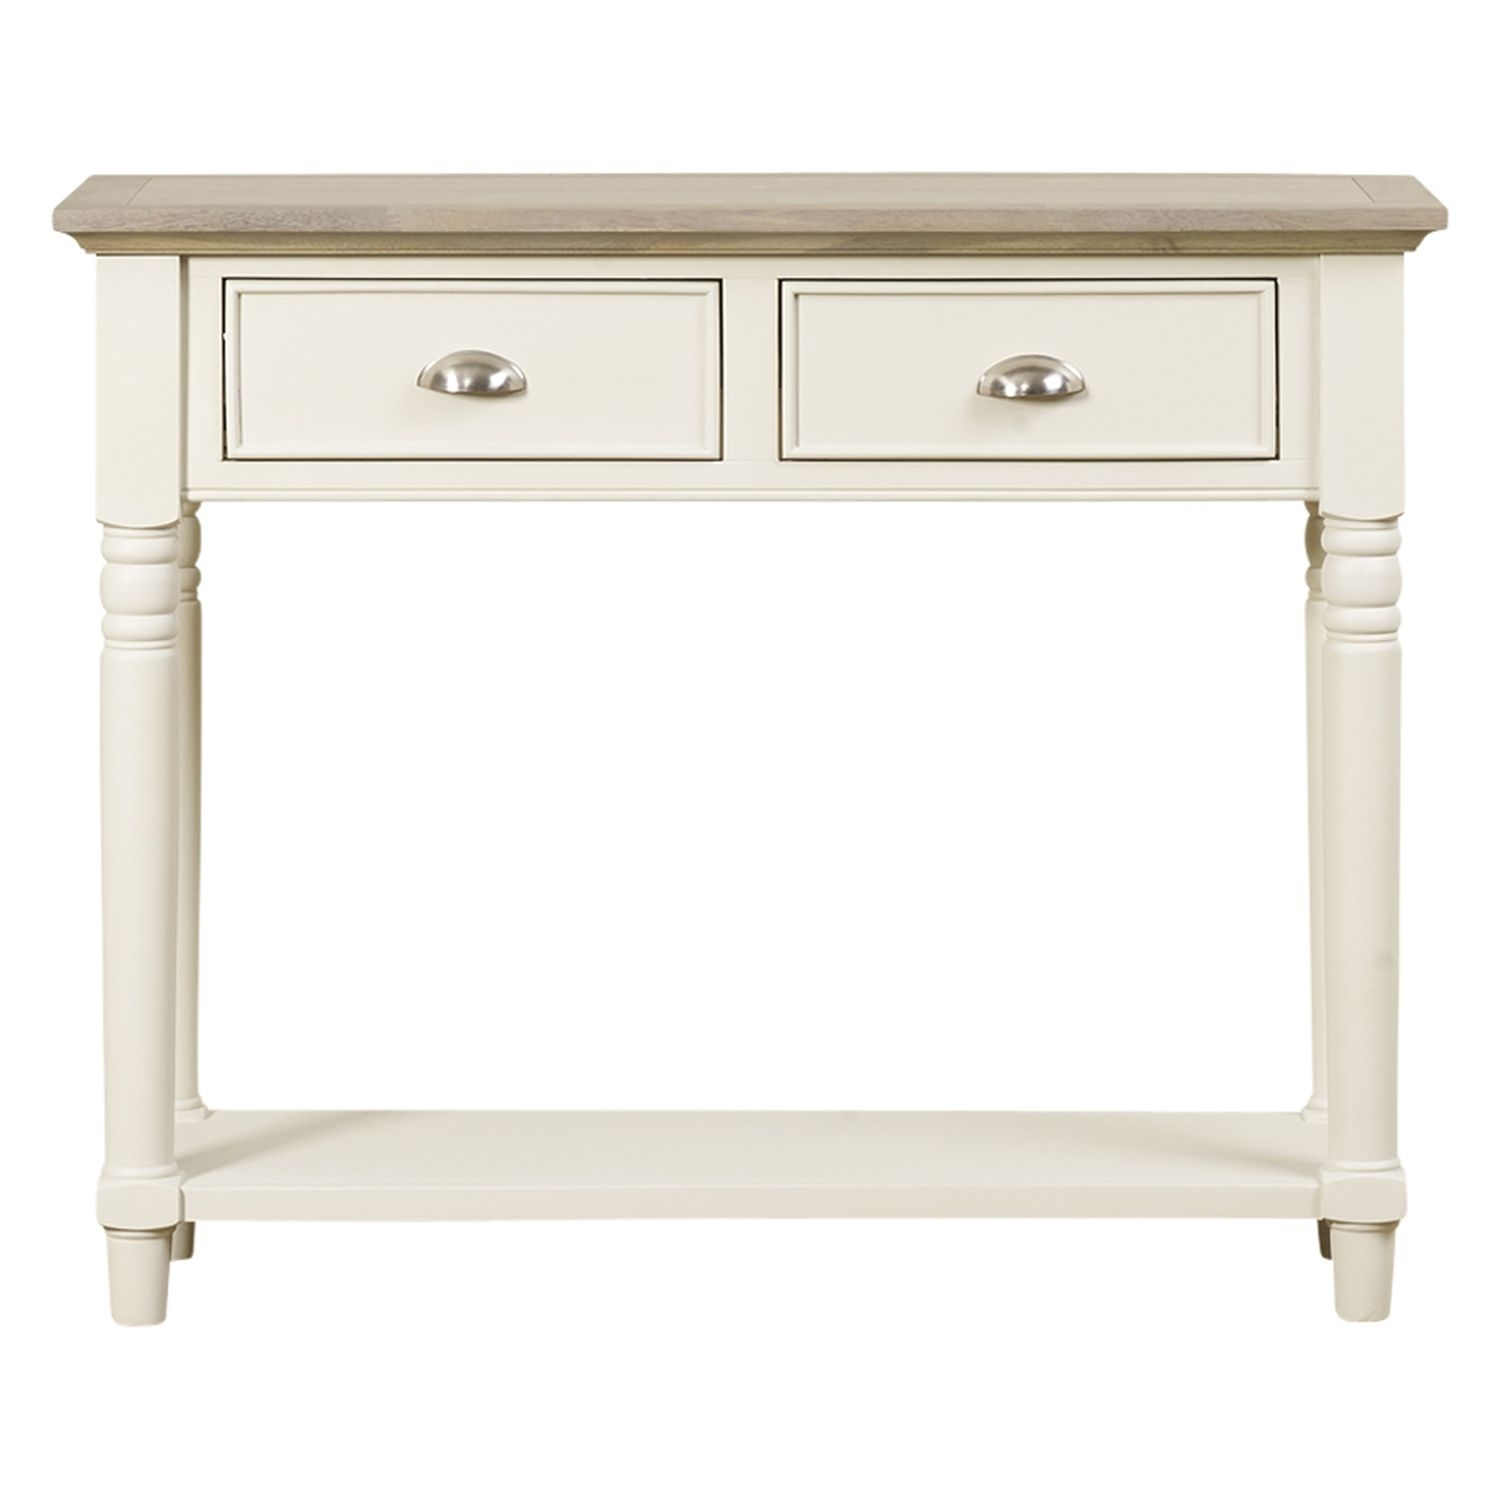 Image of Casa Lille Console Table